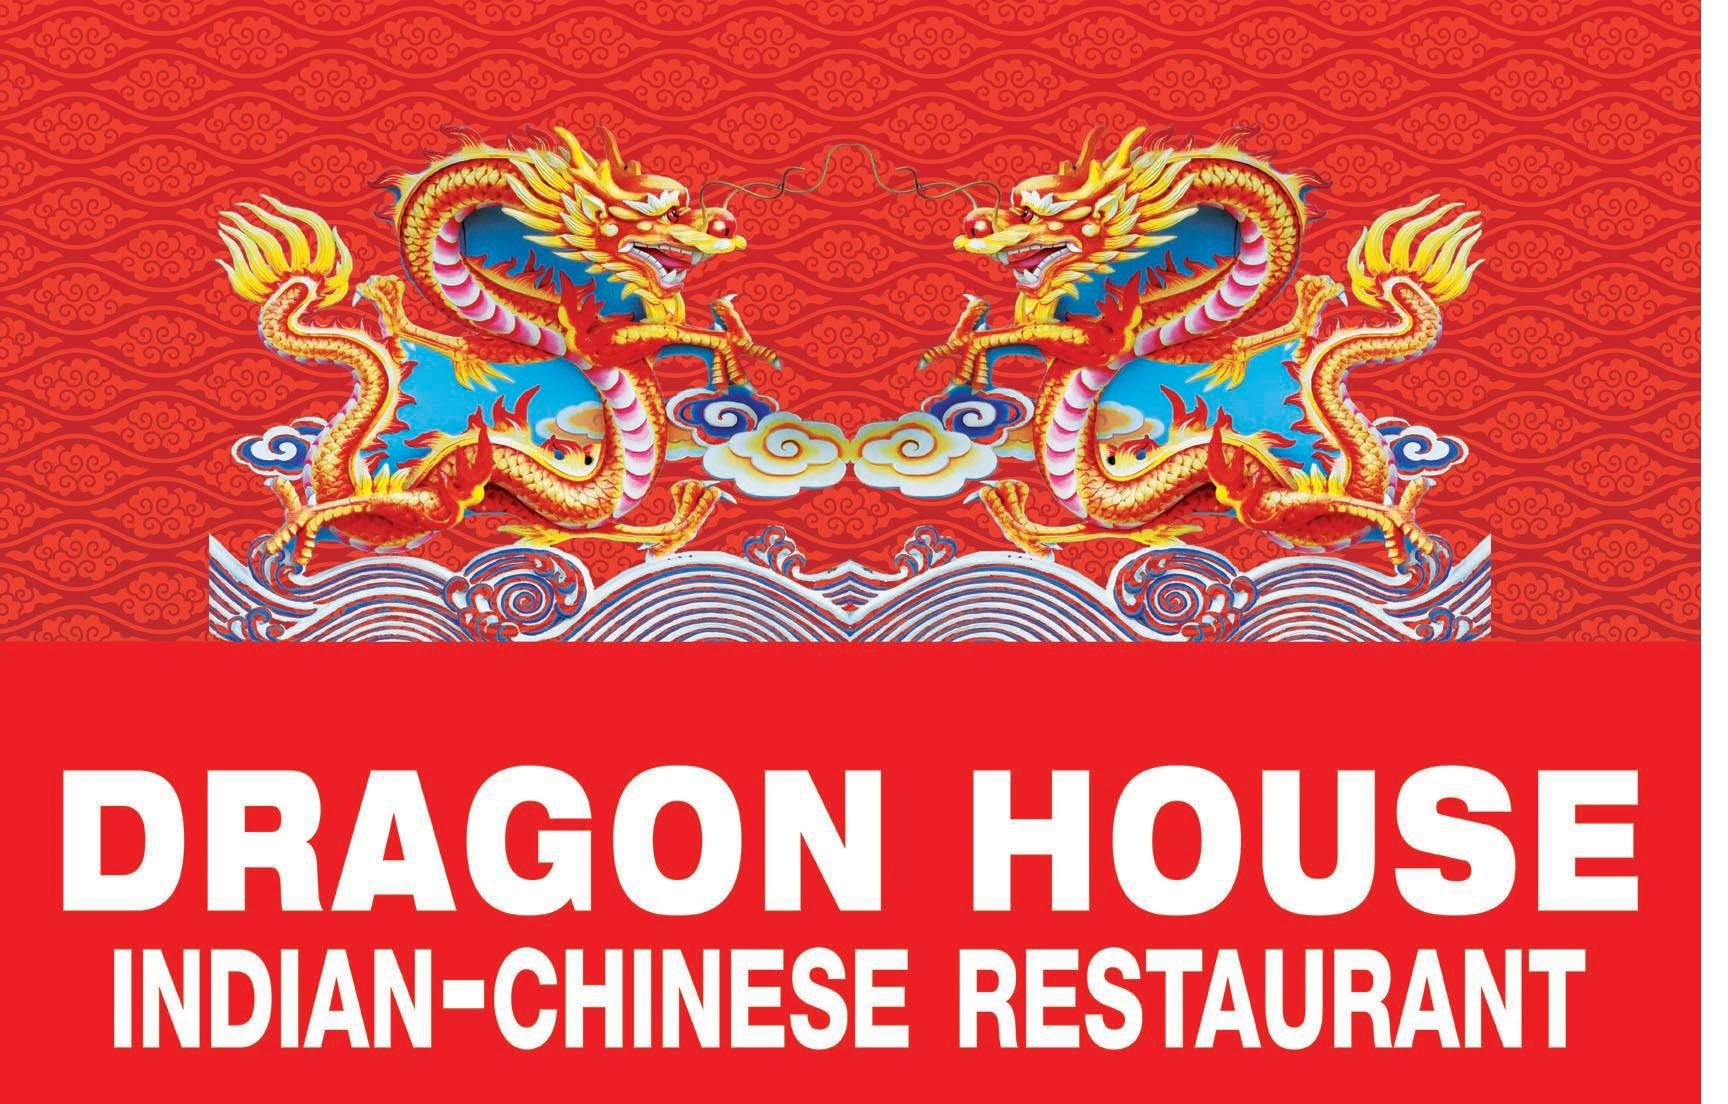 Dragon House Indian-Chinese Restaurant